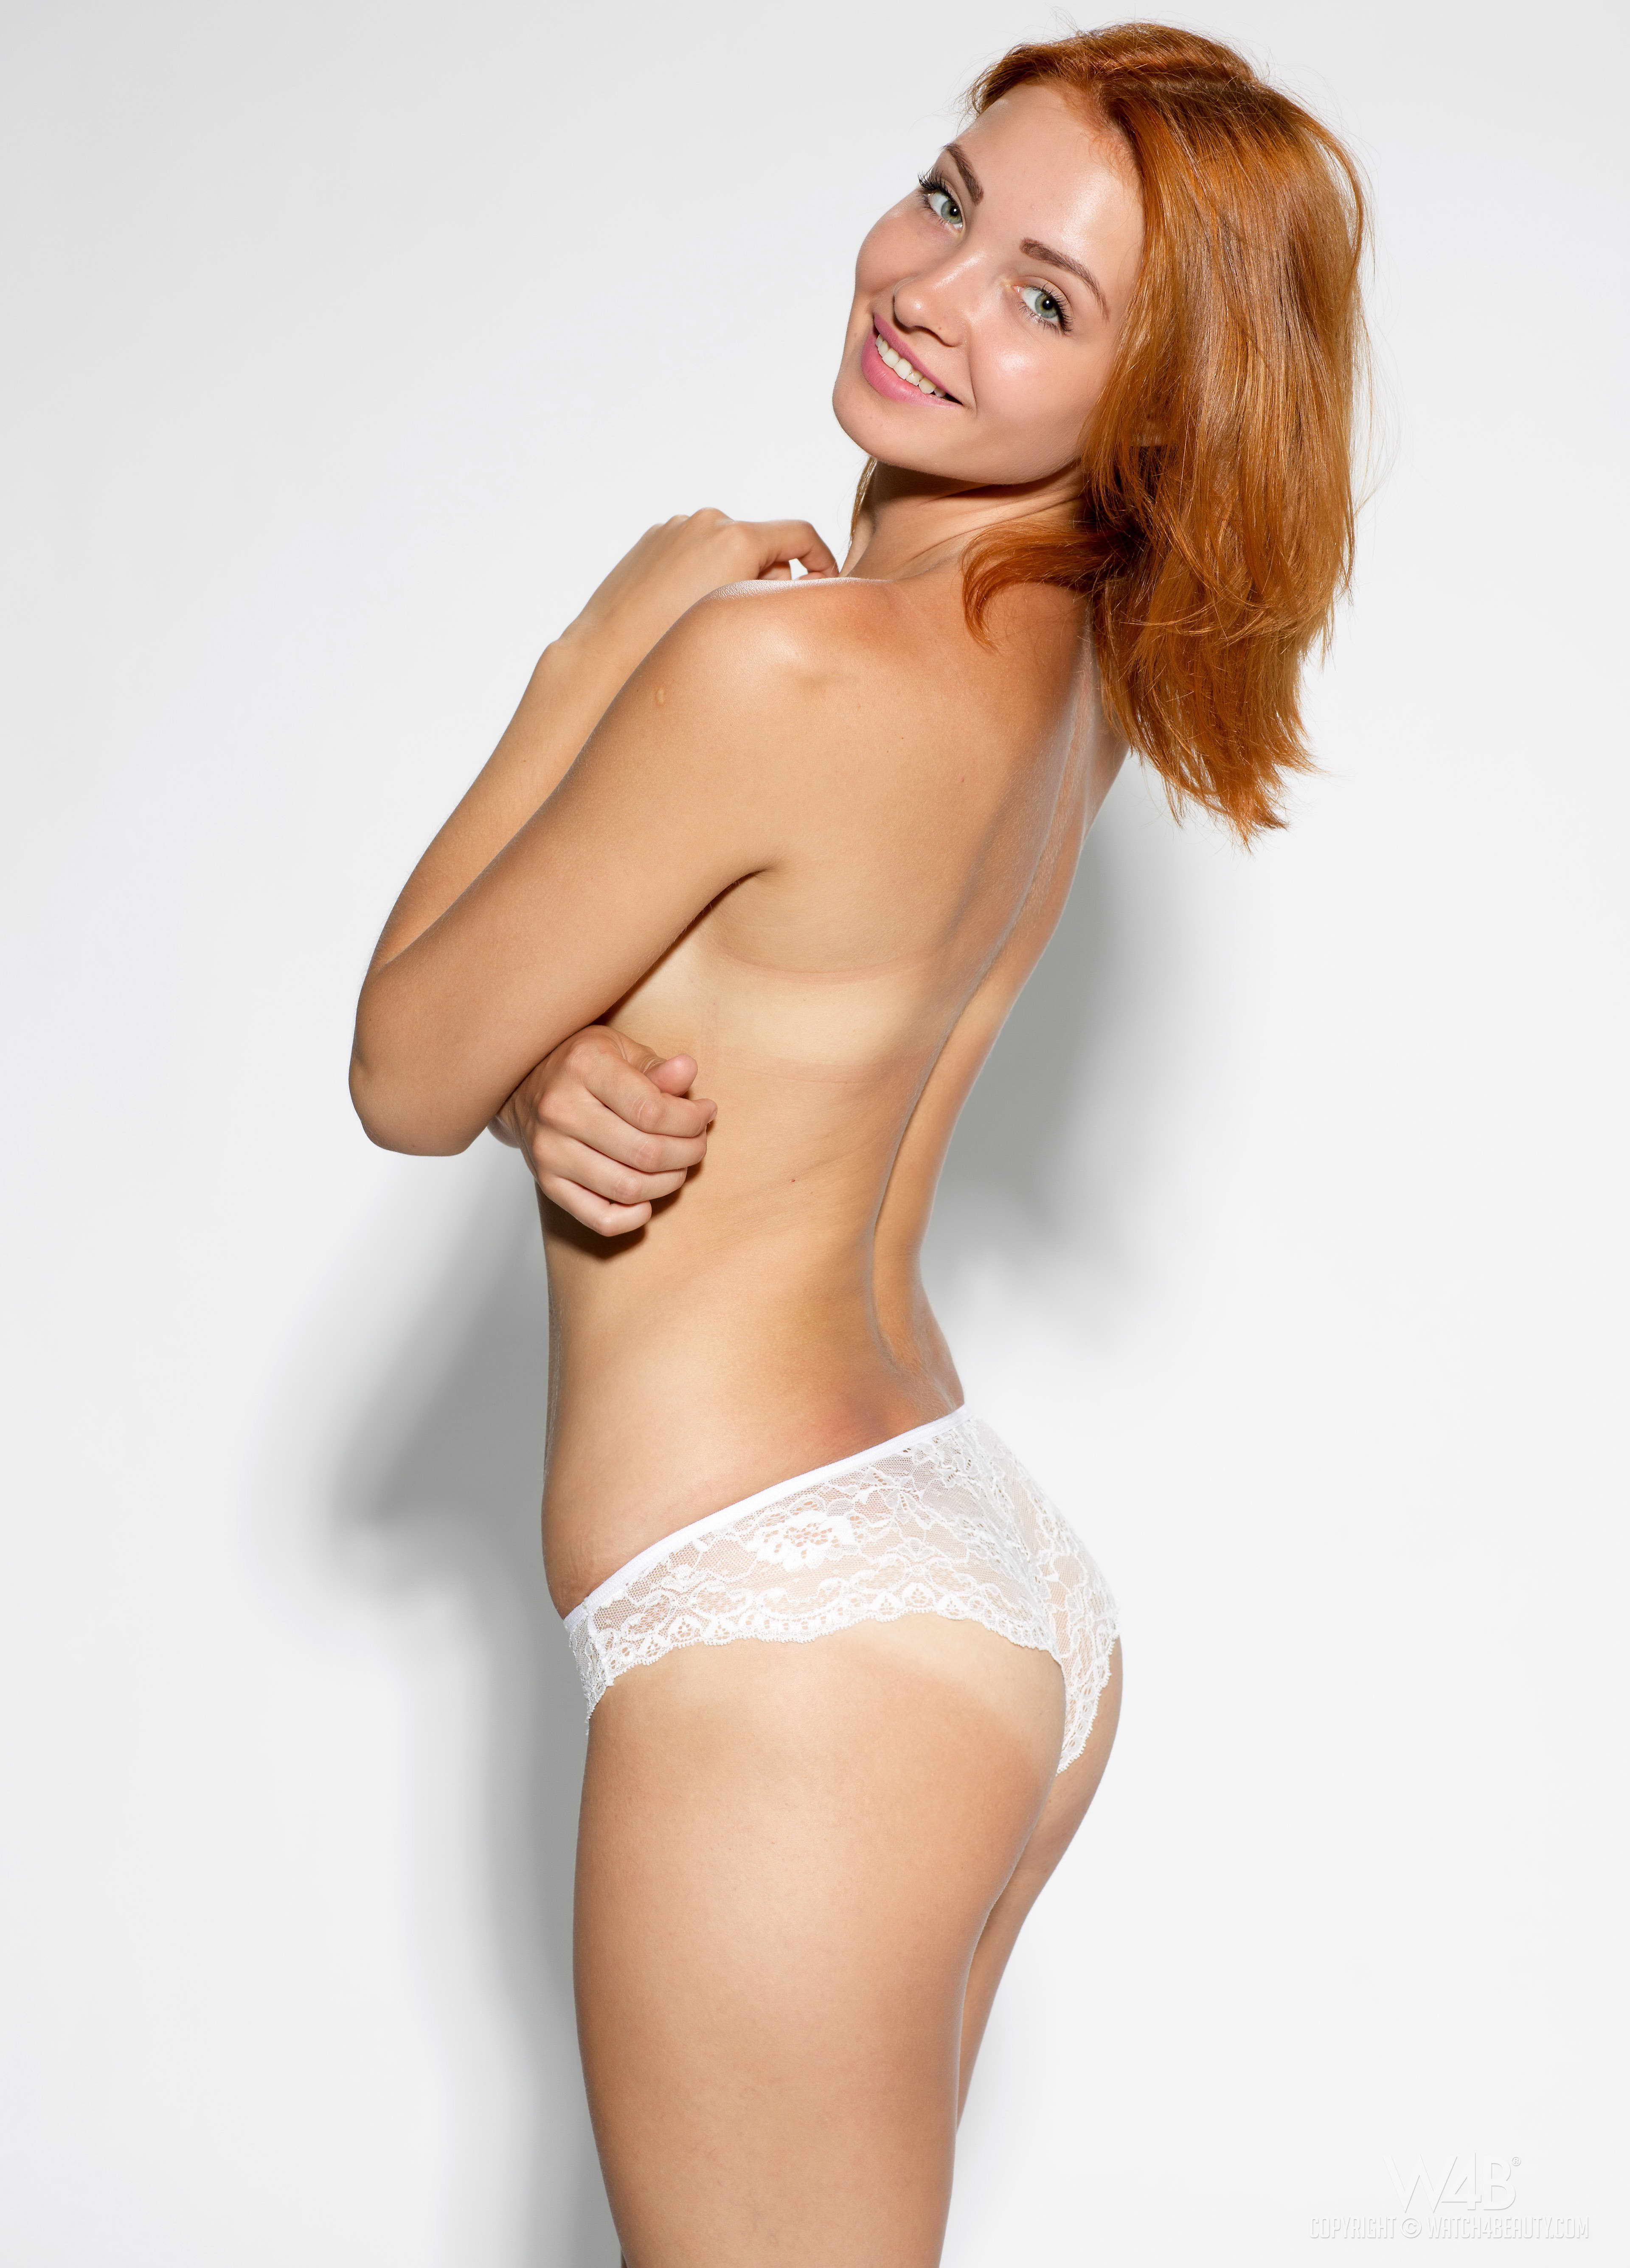 Redhead Teen With Tempting Body